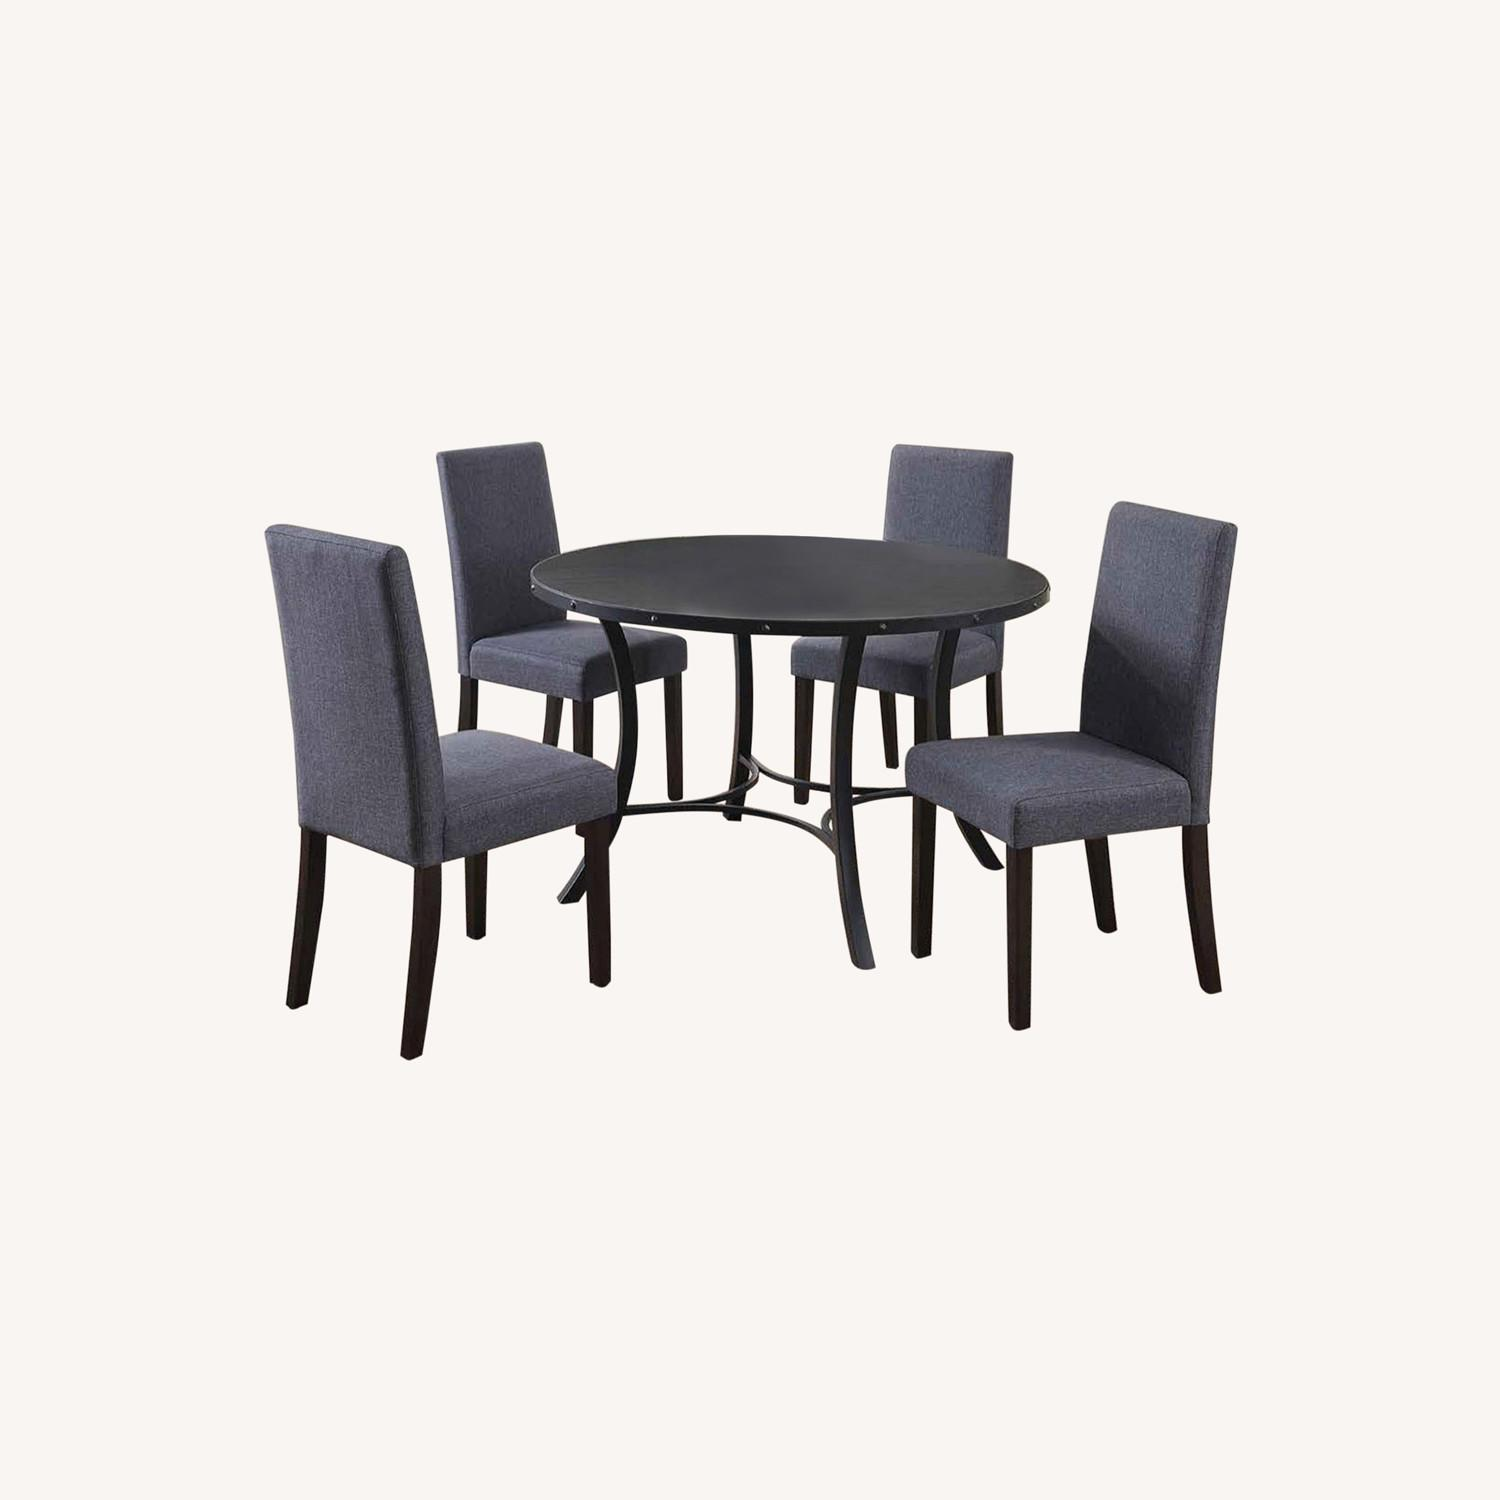 Rustic 5 Piece Dining Set In Matte Black Finish - image-5